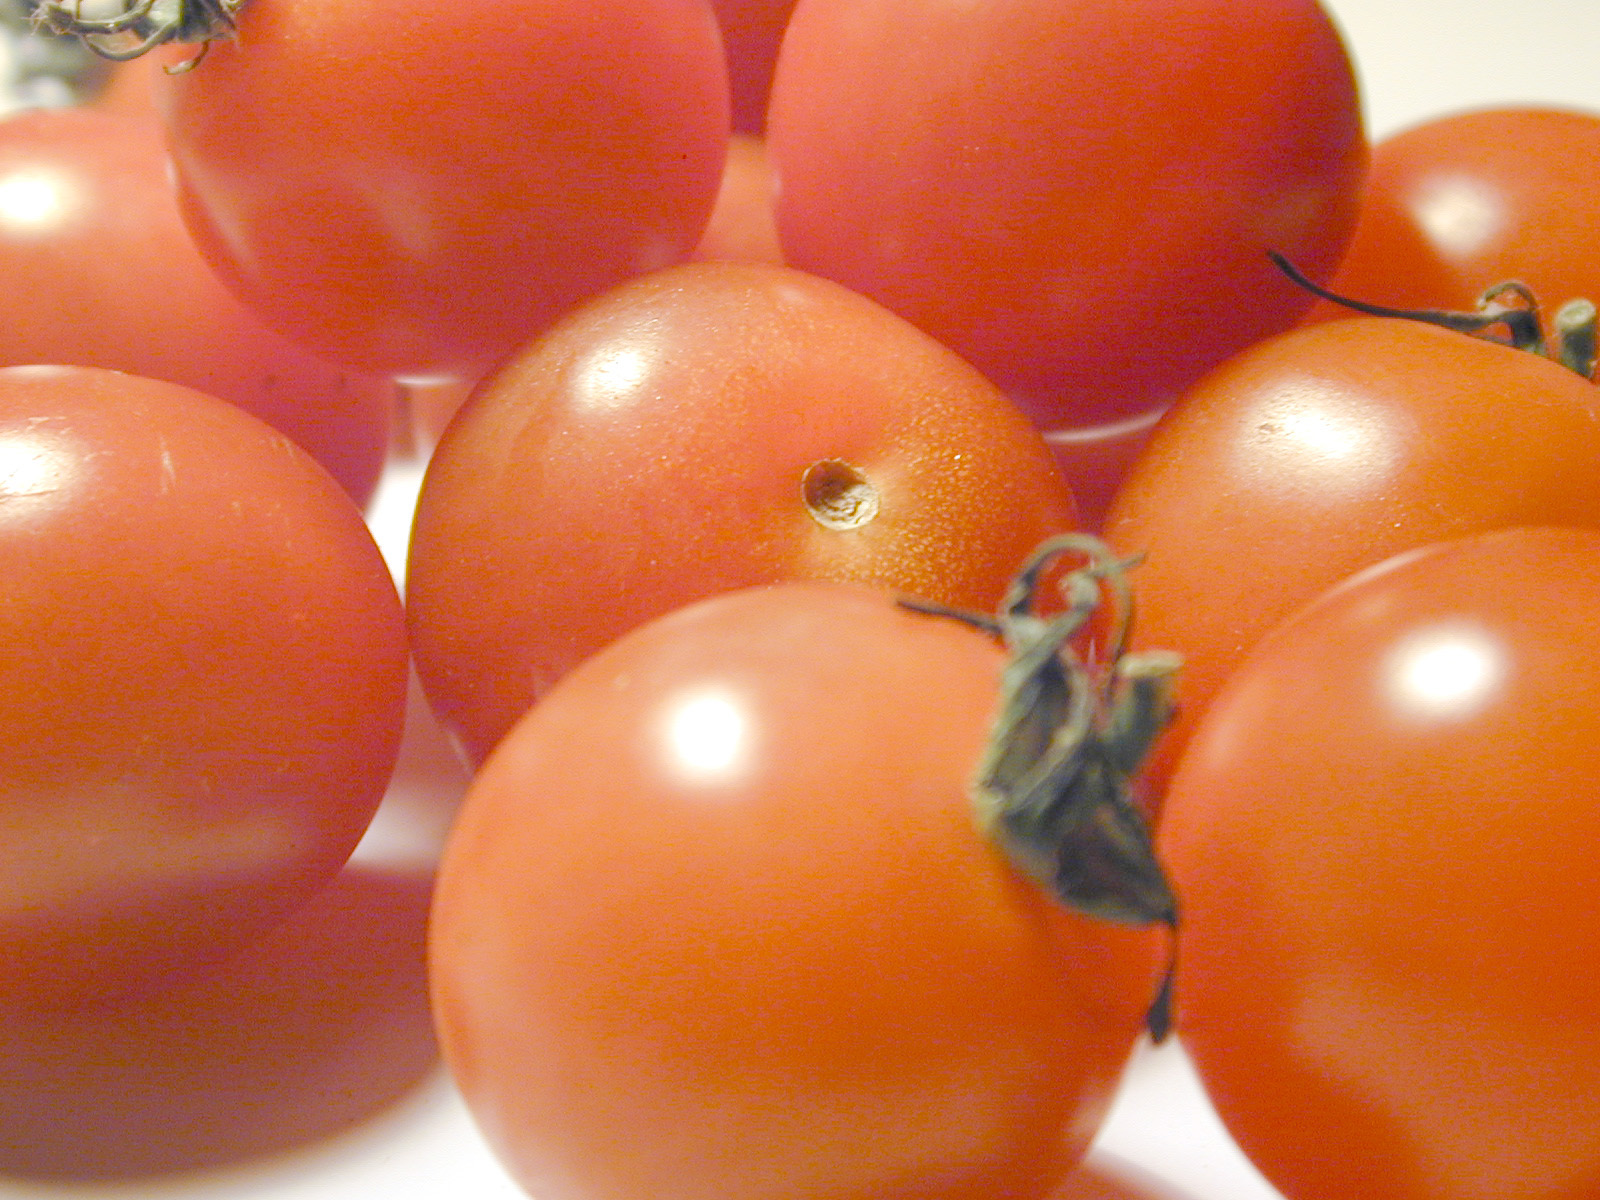 http://www.freeimageslive.com/galleries/food/fruitveg/pics/cherrytomatos0755.jpg